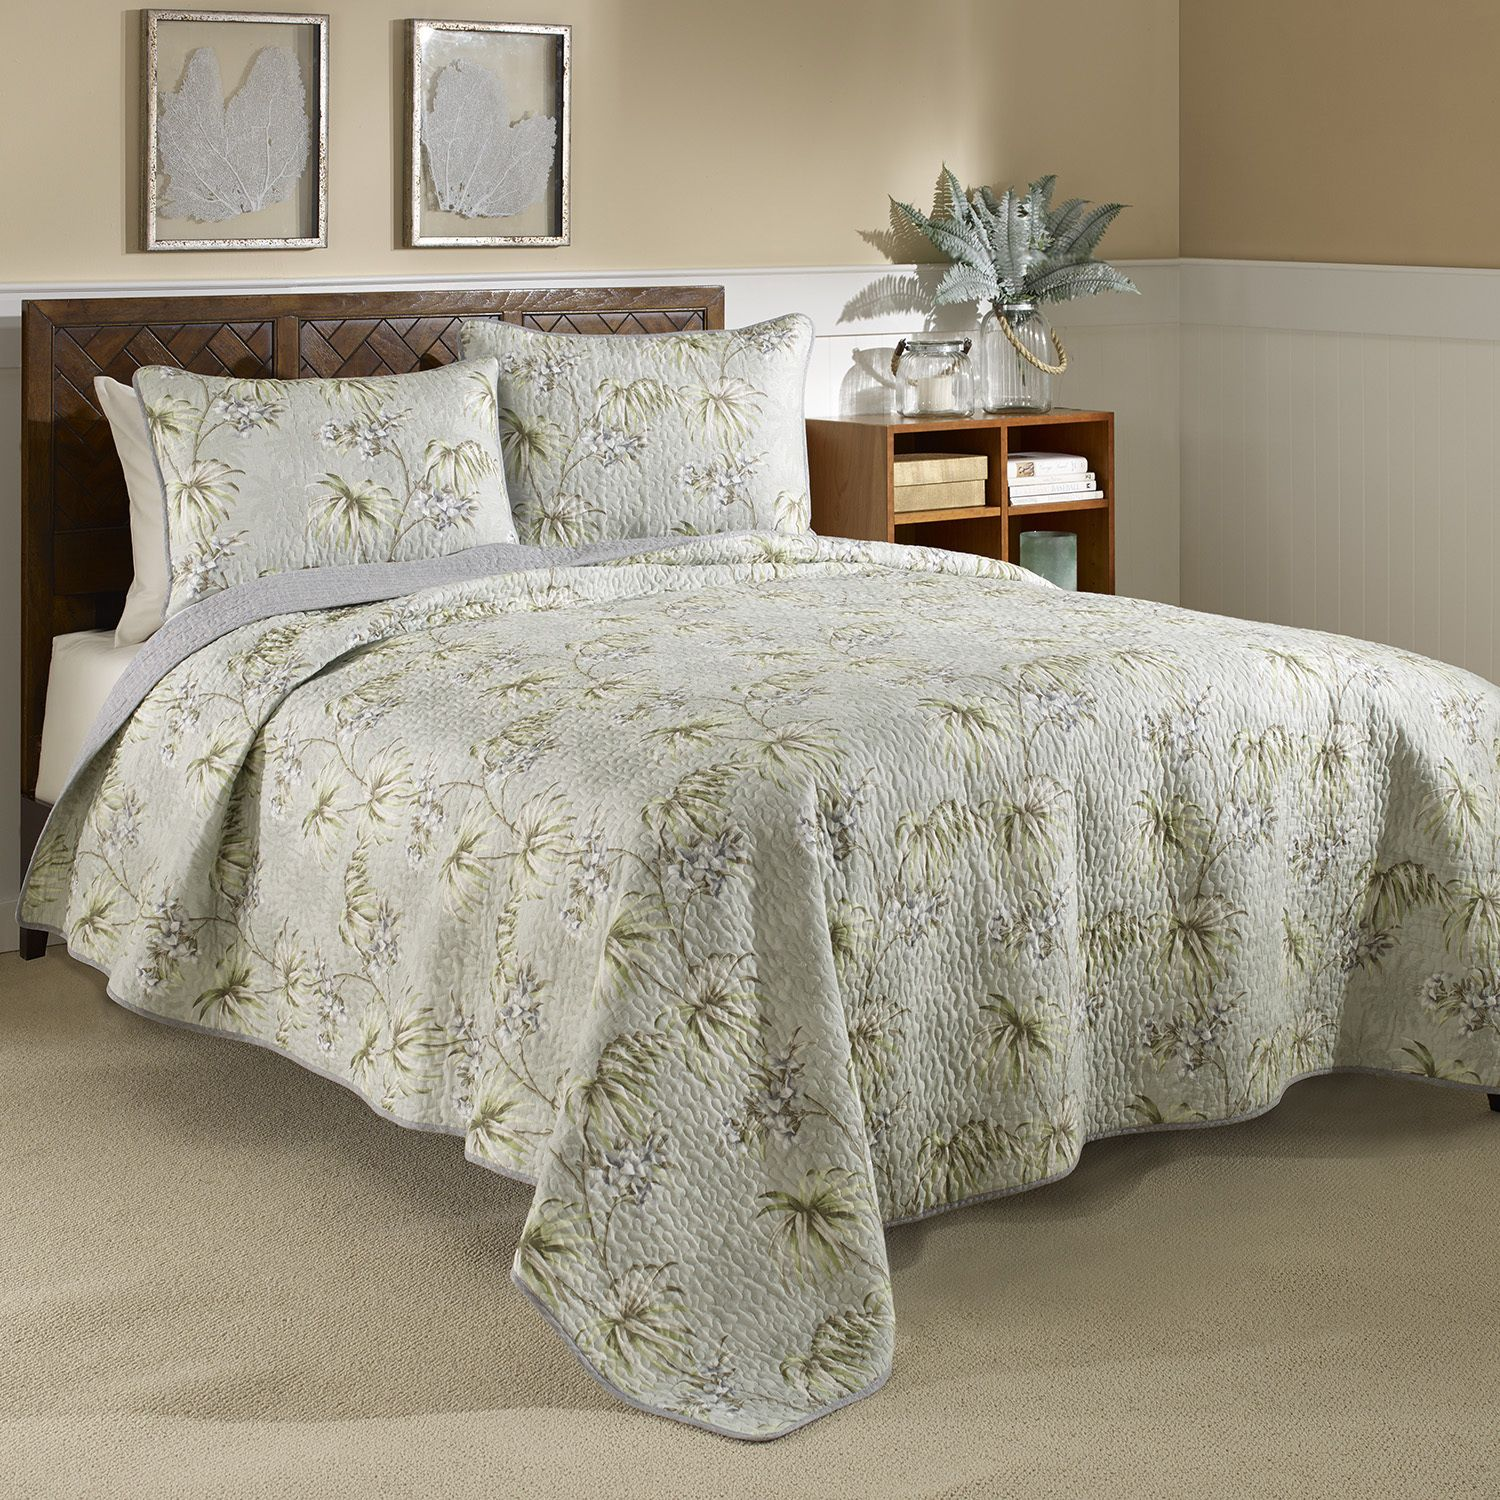 This Beautiful Bedding By Tommy Bahama Is Sure To Enhance